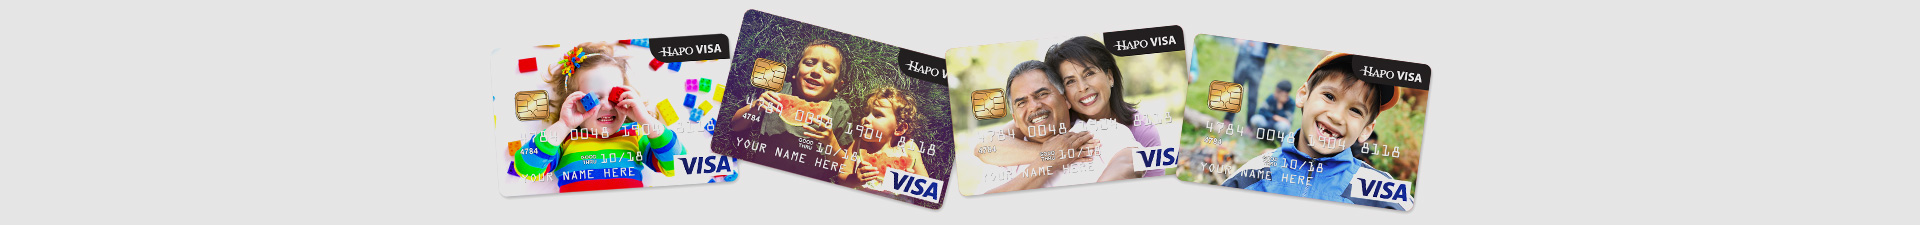 Personalize Your HAPO Credit Card